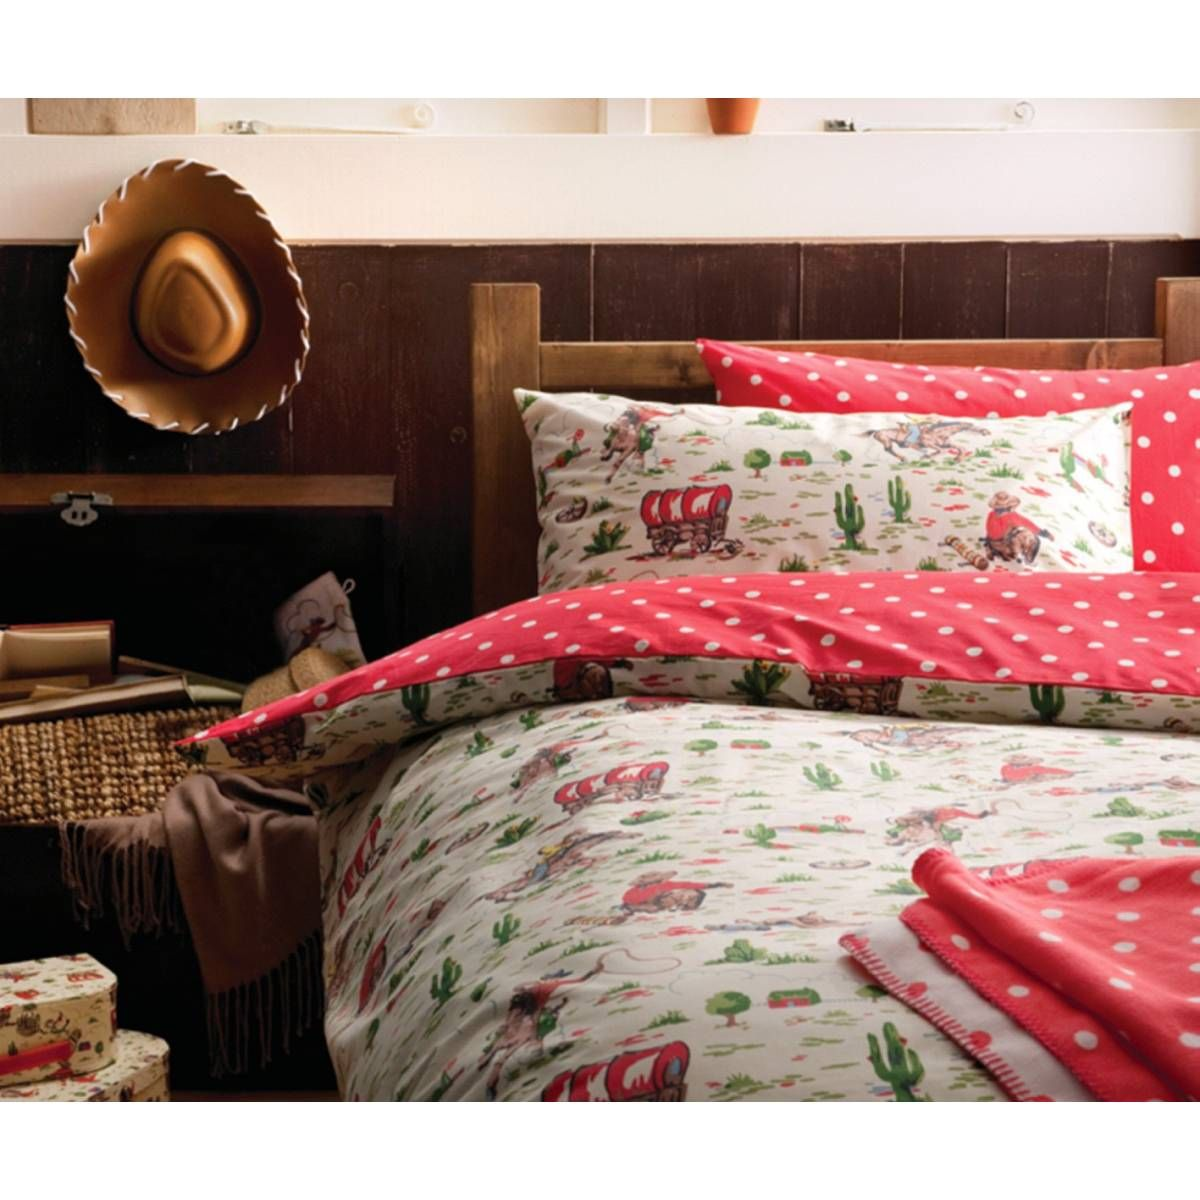 Cath kidston cowboy bedding set childrens bedroom ideas for Cath kidston style bedroom ideas